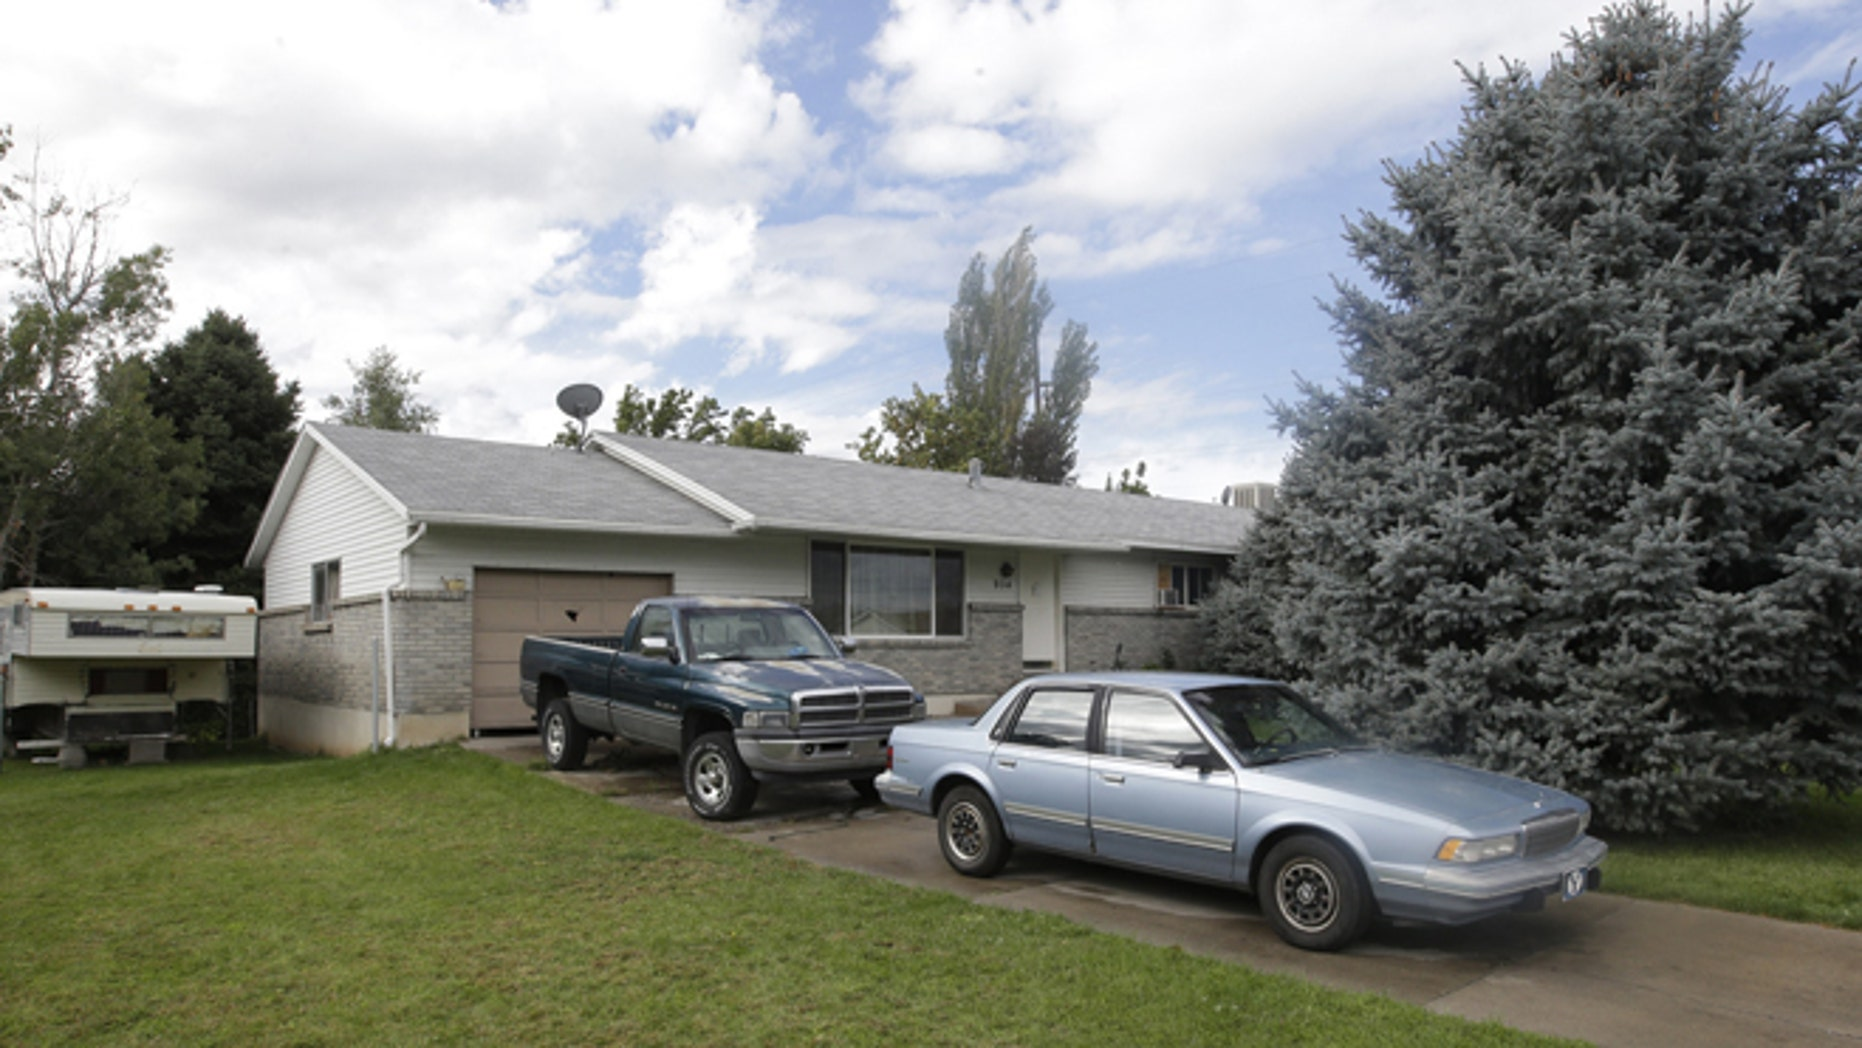 Sept. 28: The home where five Utah family members found dead in their home, in Springville, Utah. Police say the deaths of five members of a Utah family whose bodies were found last month do not appear to be accidental or natural.